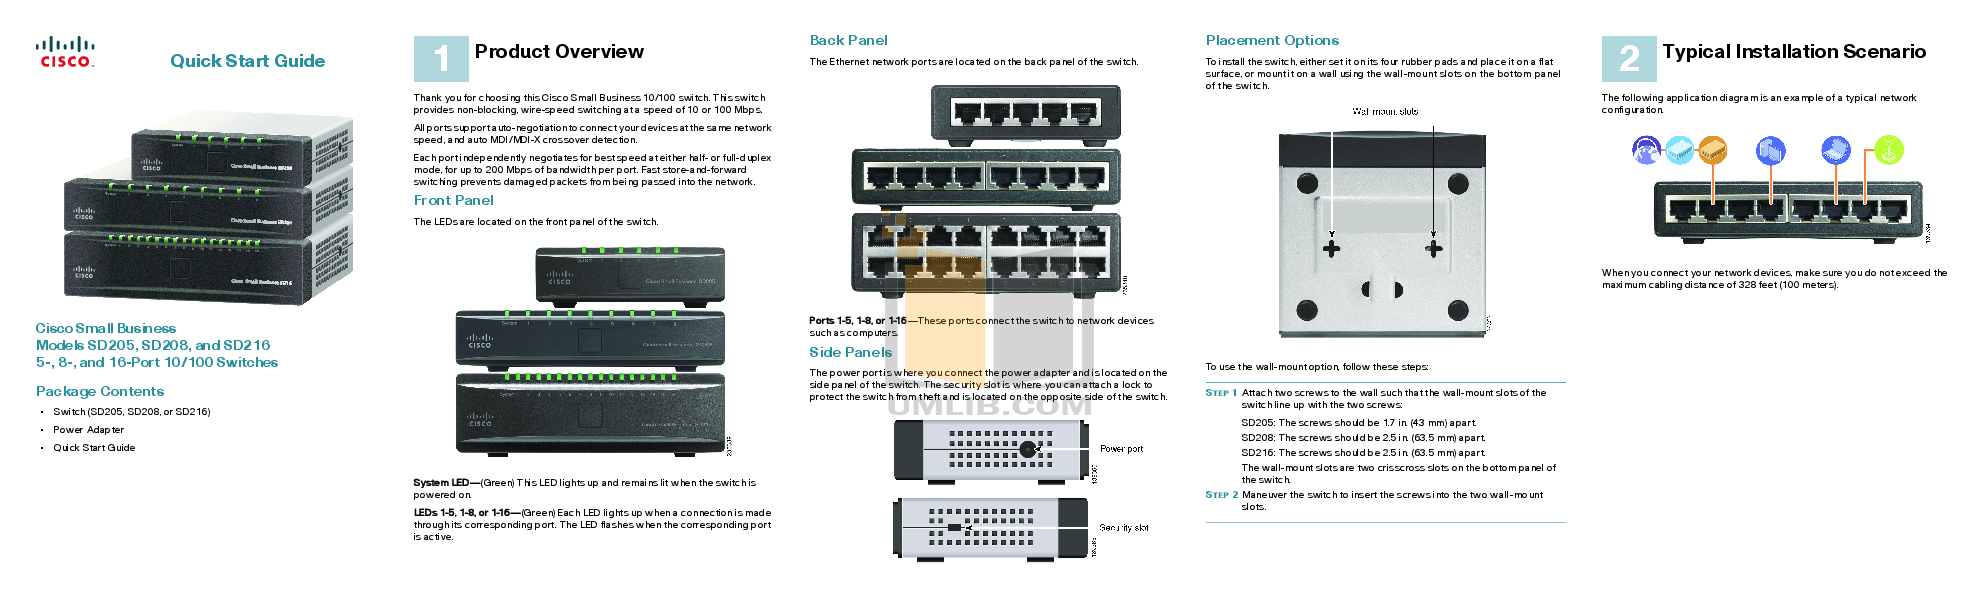 Cisco Sd208p Wiring Diagram Diagrams Instructions Switch Download Free Pdf For Manual